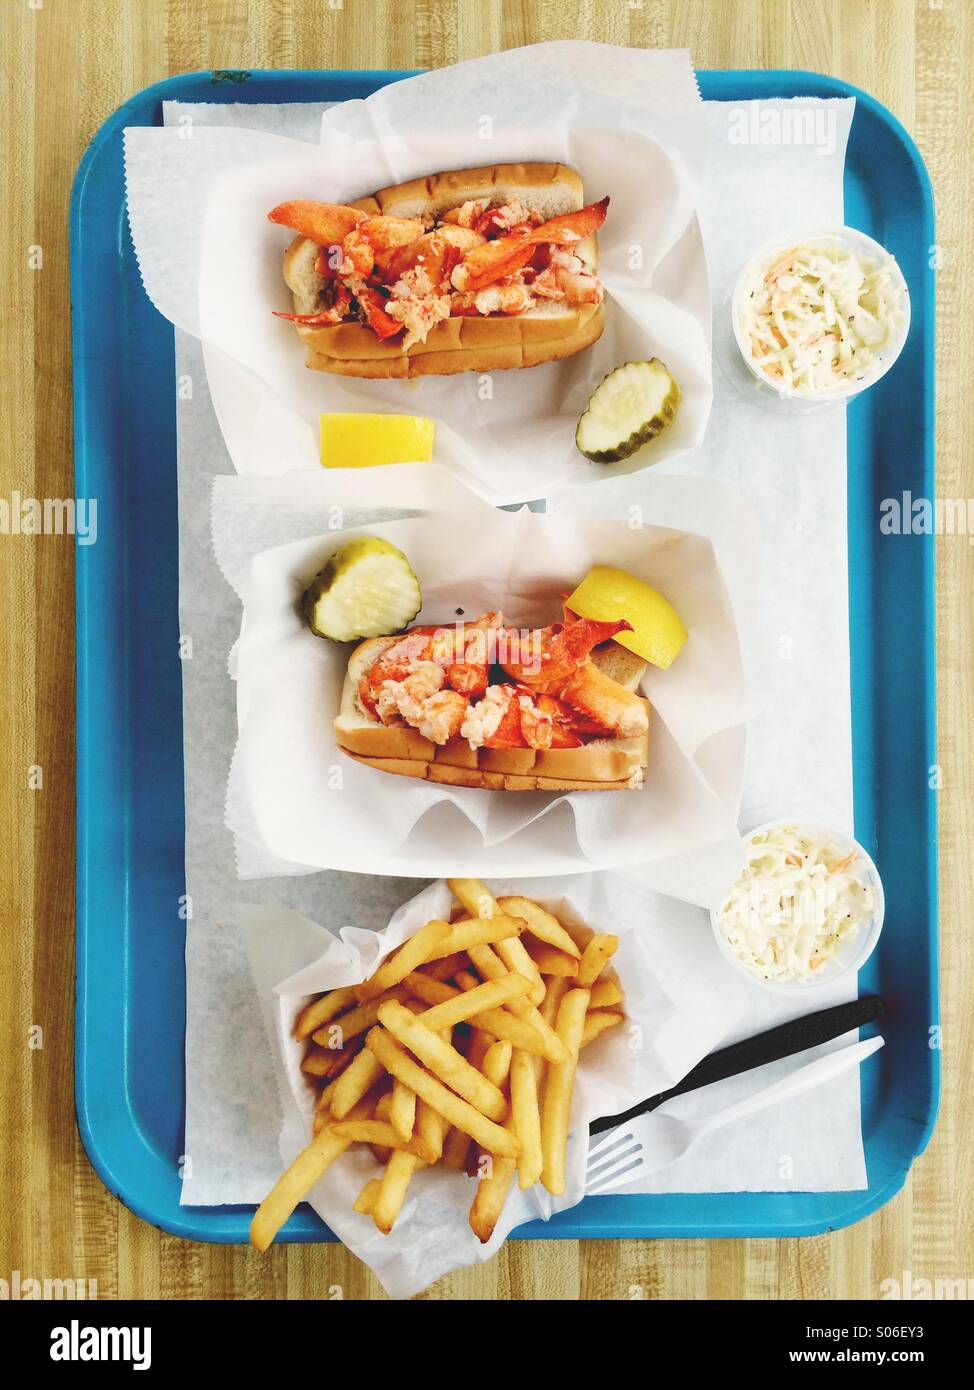 Classic New England lobster rolls, on a tray with fries and coleslaw. - Stock Image